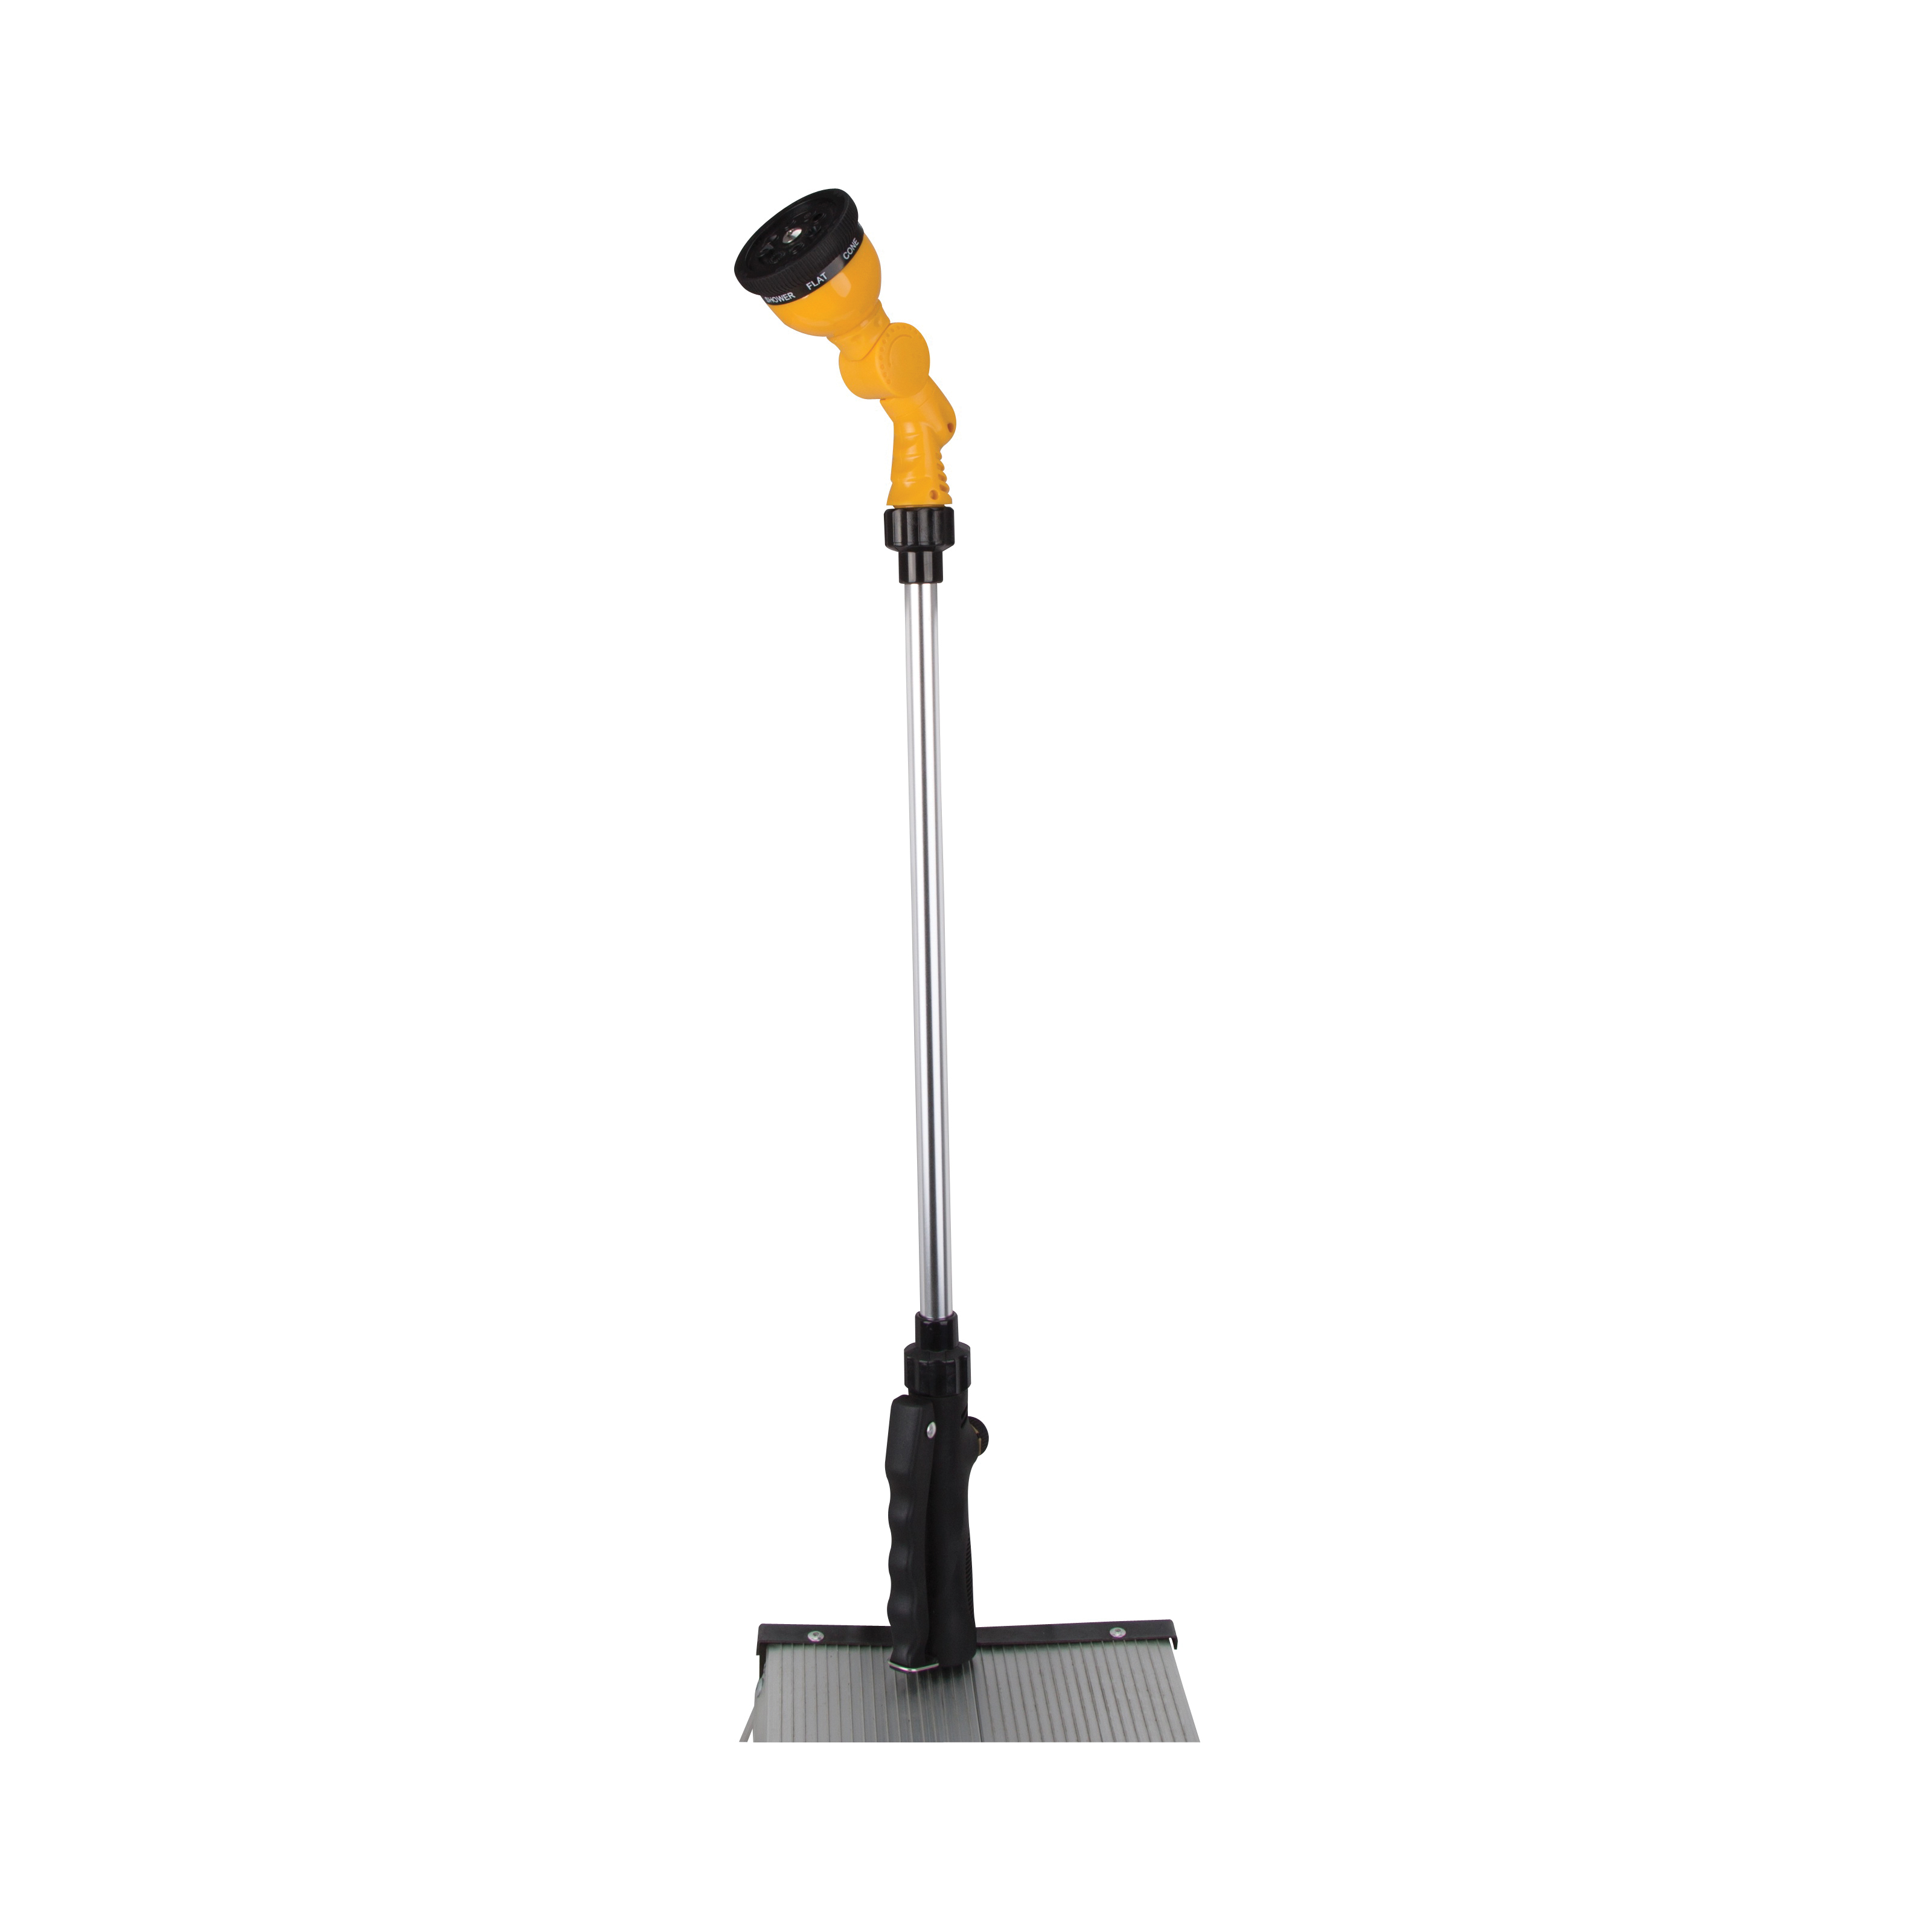 Picture of Landscapers Select GW-53571A Watering Wand, 8 -Spray Pattern, Full, Center, Jet, Mist, Angle, Shower, Flat, Cone